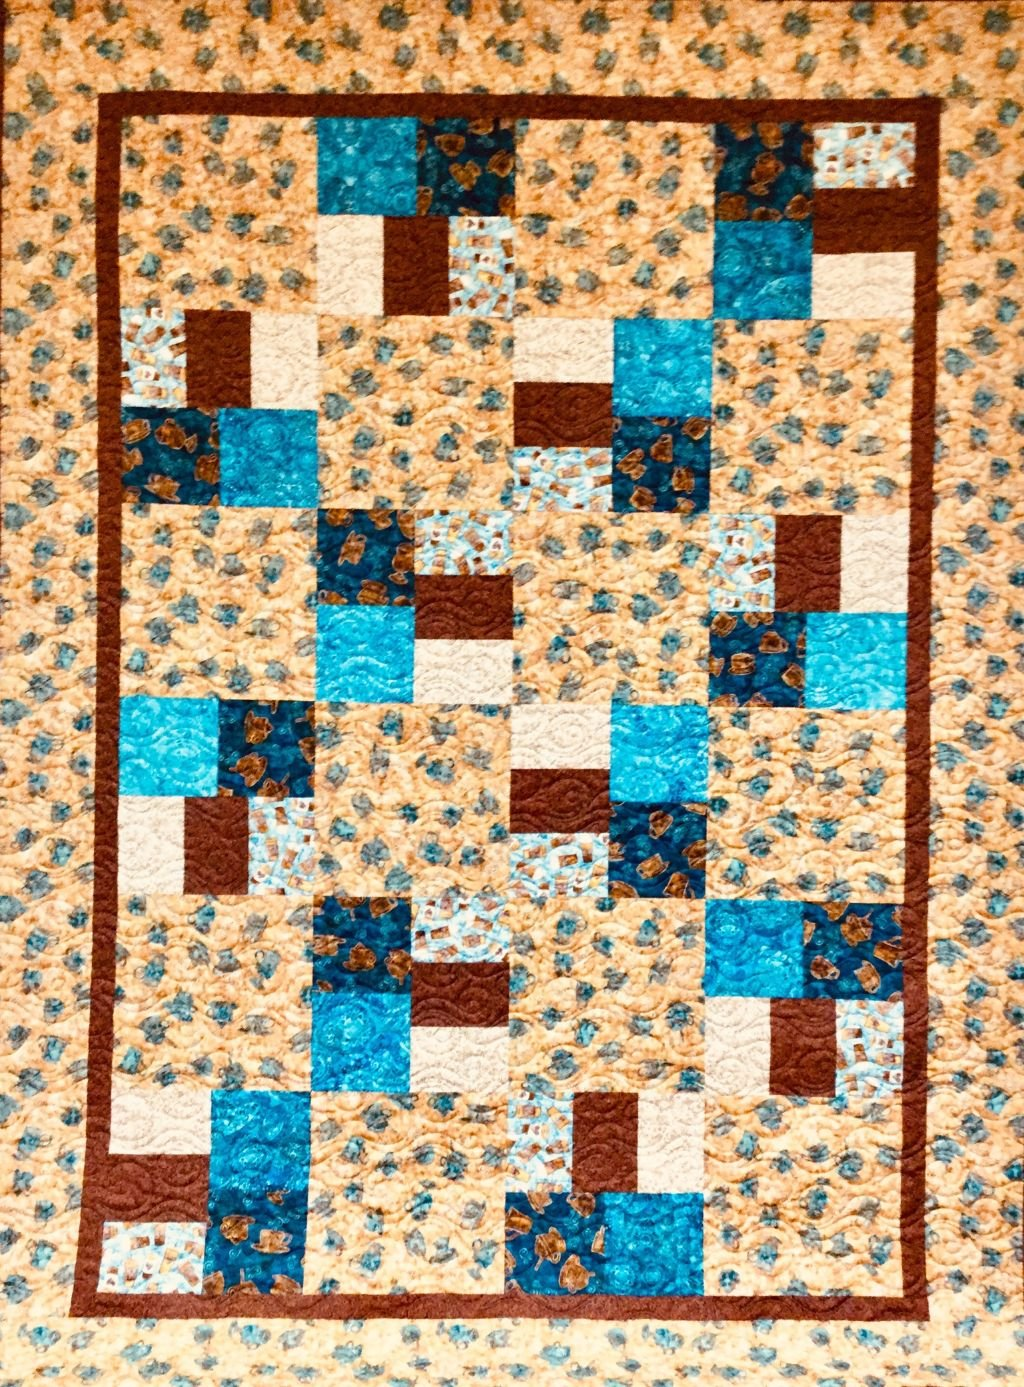 Cafe All Day Quilt 63x87